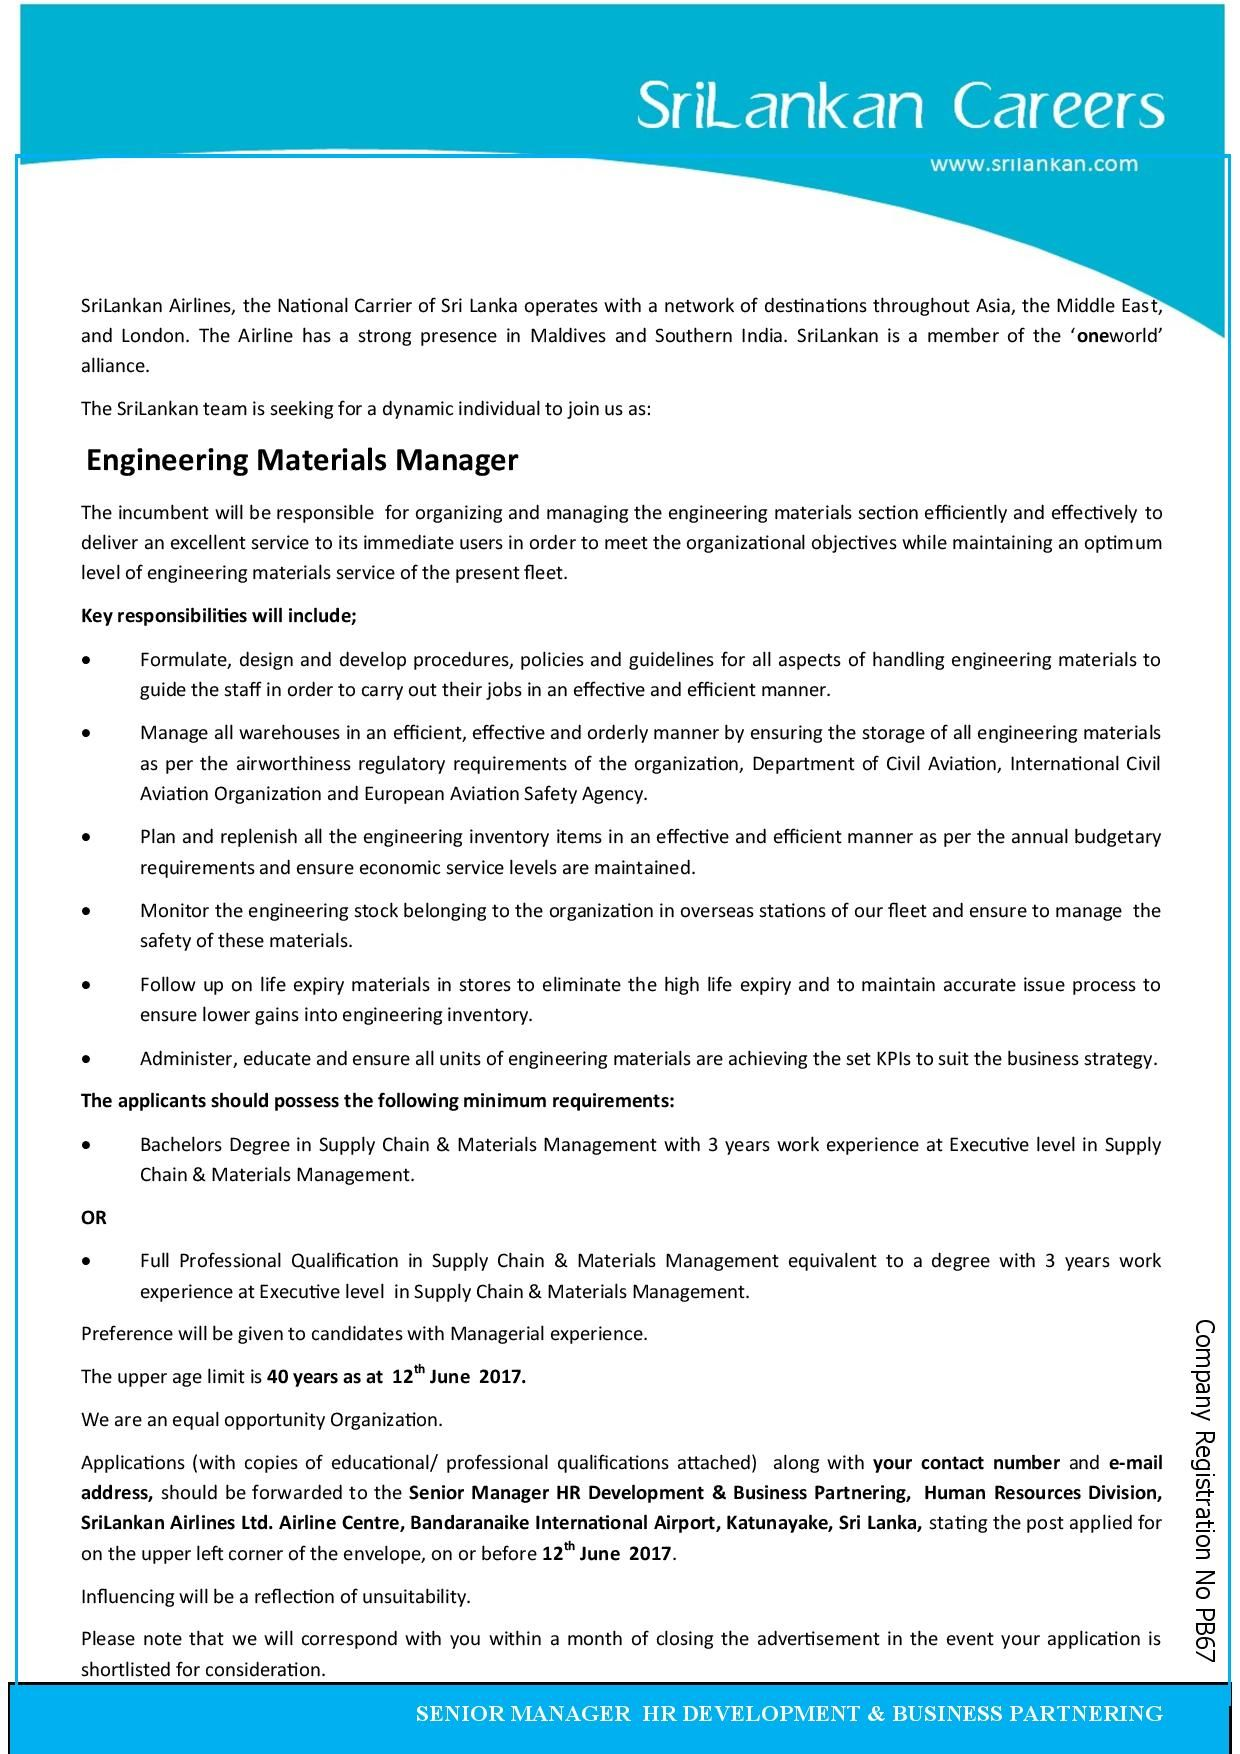 engineering material manager at sri lankan airlines careerfirst - Airline Management Jobs